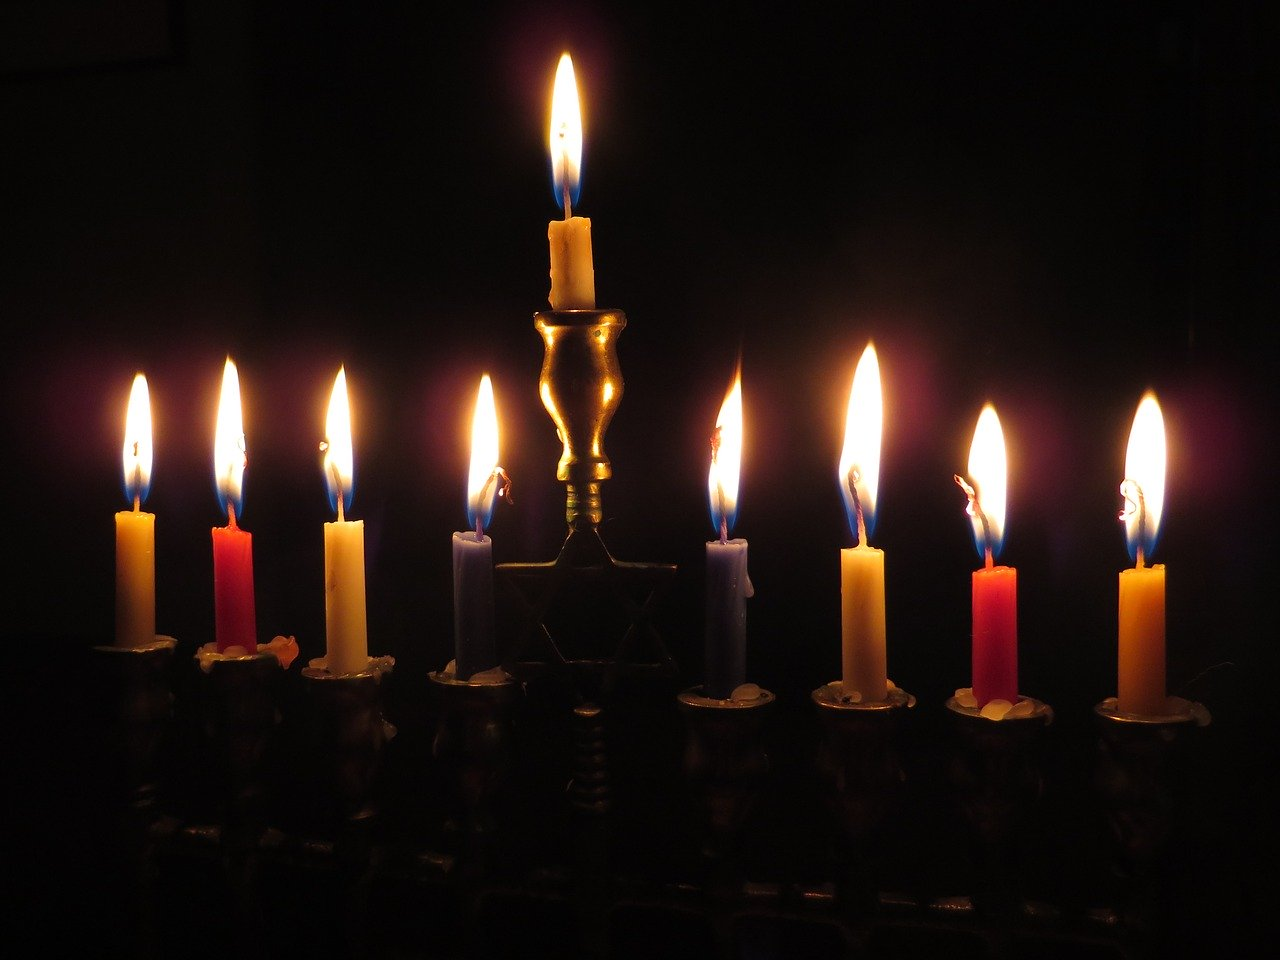 A menorah with all the candles lit